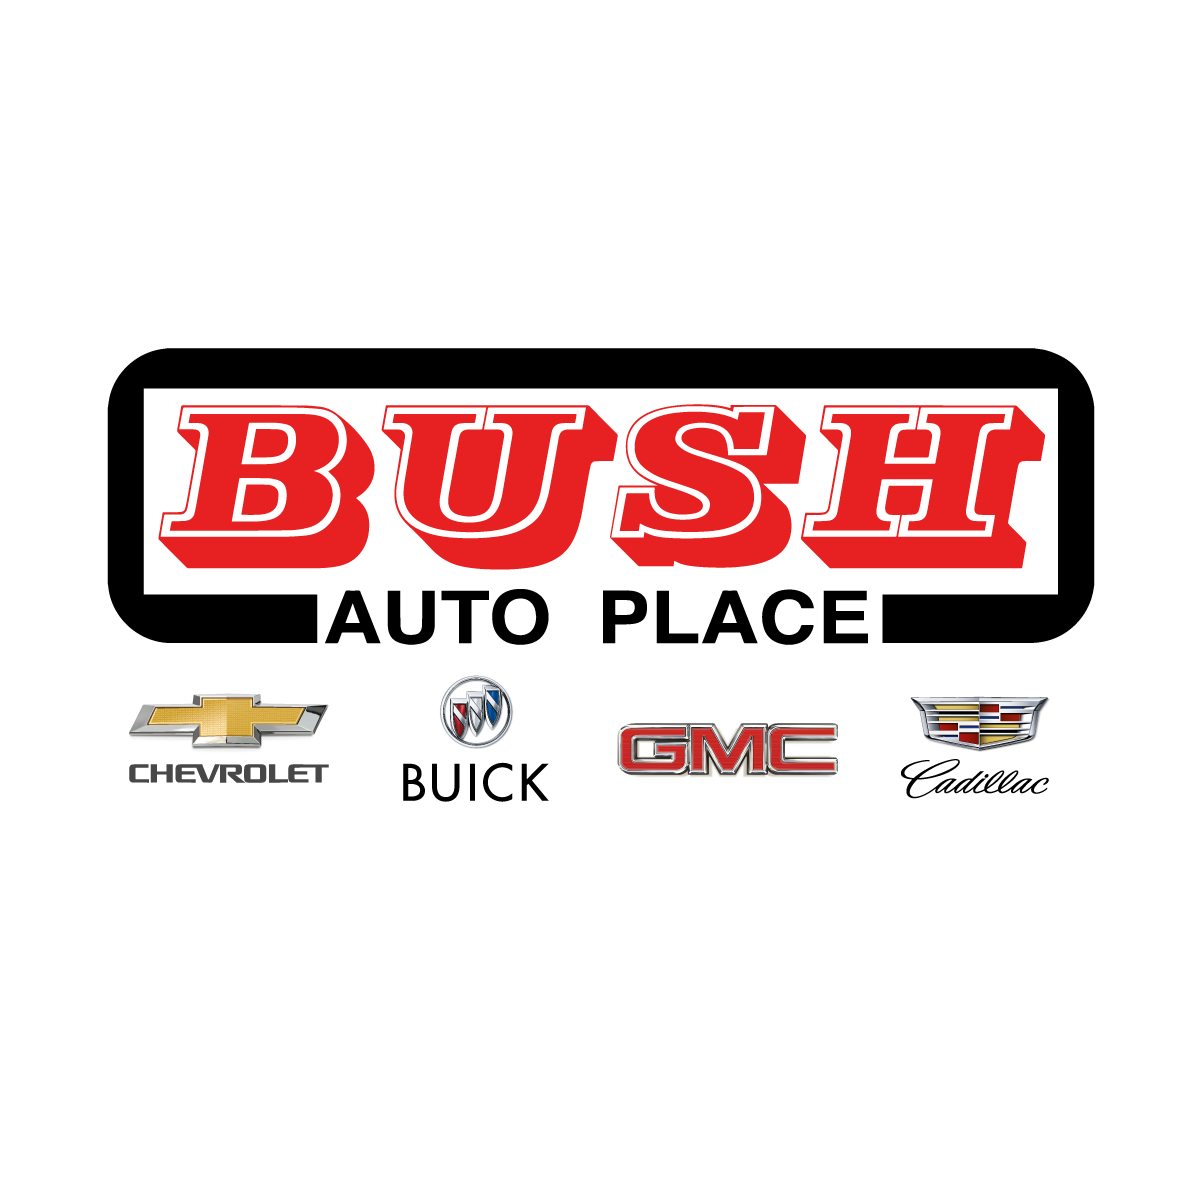 Honda Dealers Dayton Ohio >> Bush Auto Place - Wilmington, OH: Read Consumer reviews, Browse Used and New Cars for Sale